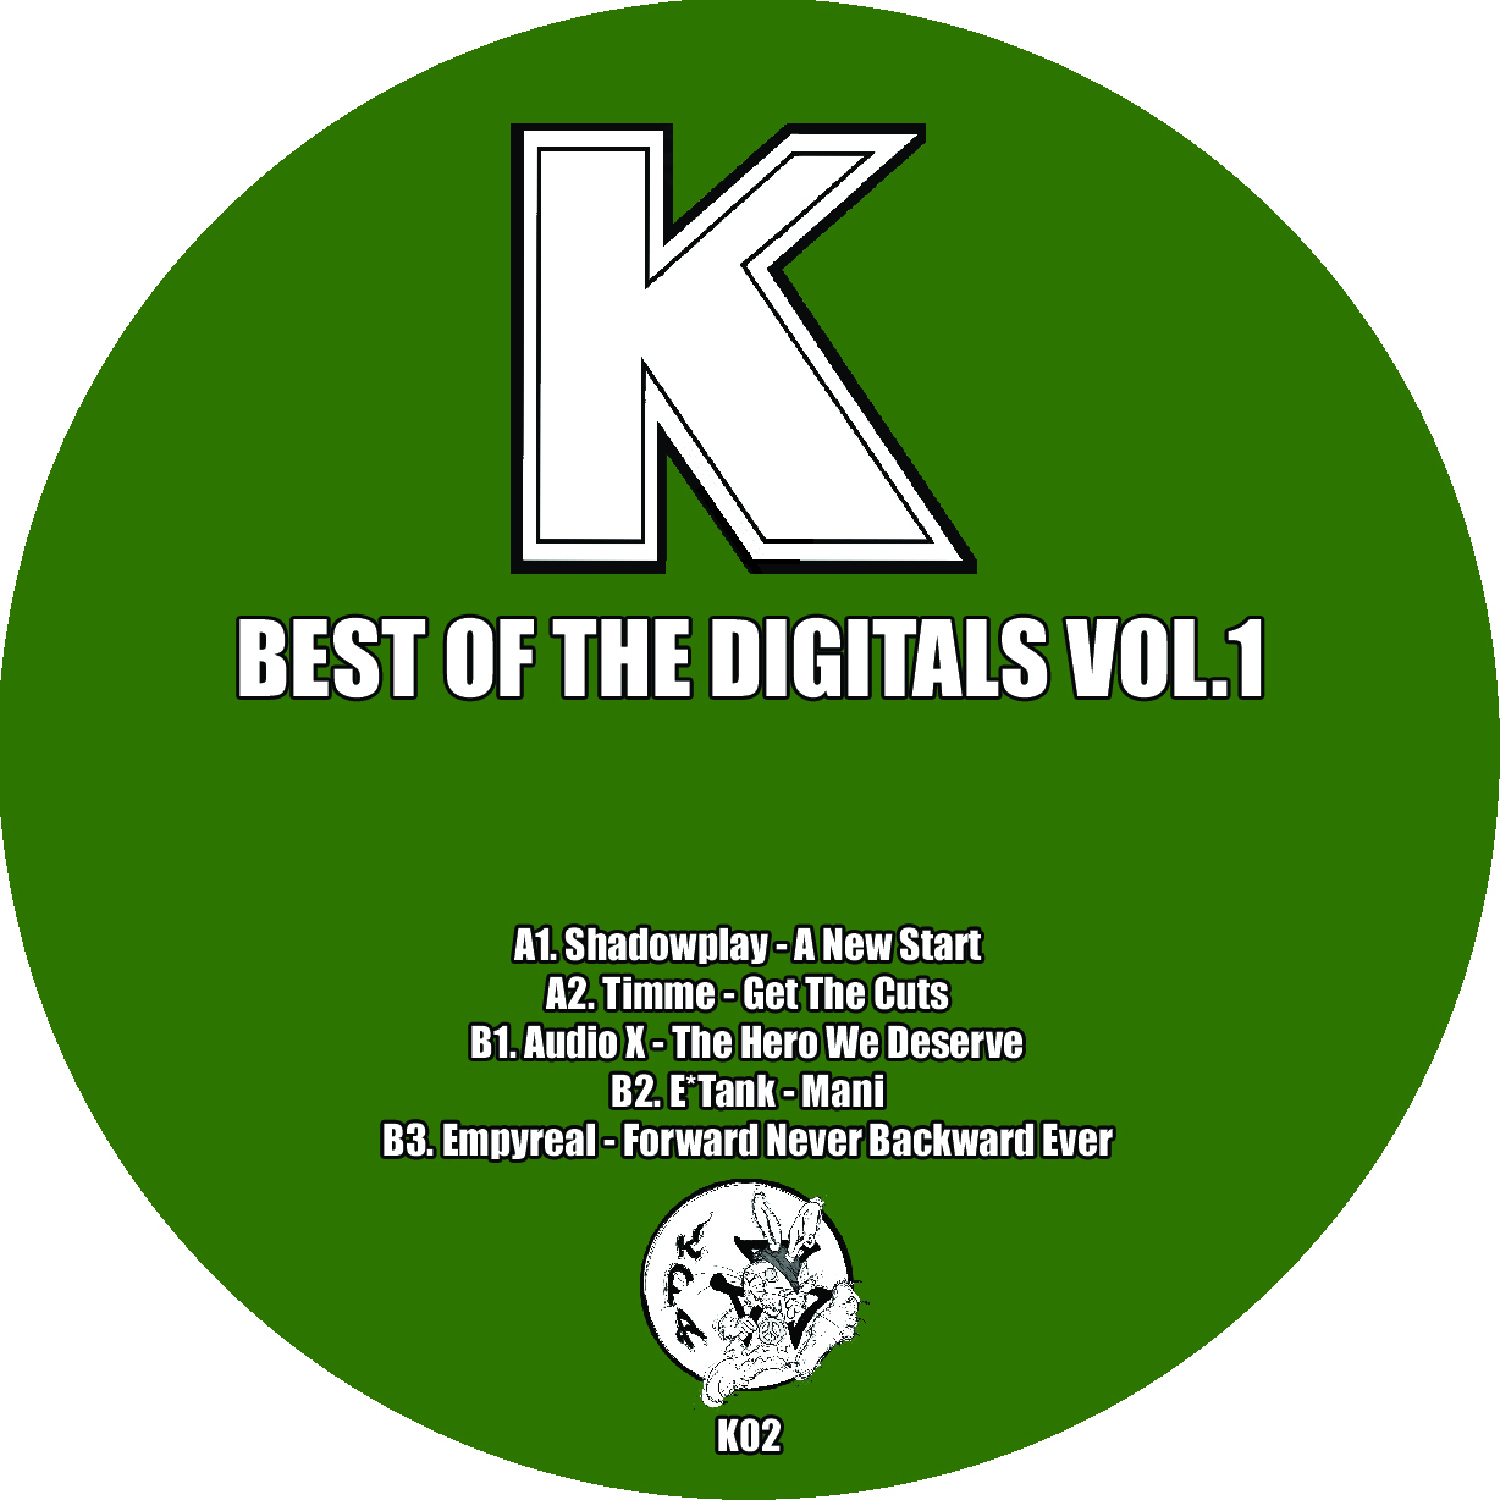 "[K02] Various - Best Of The Digitals Vol. 1 EP (12"" Vinyl + Digital)"